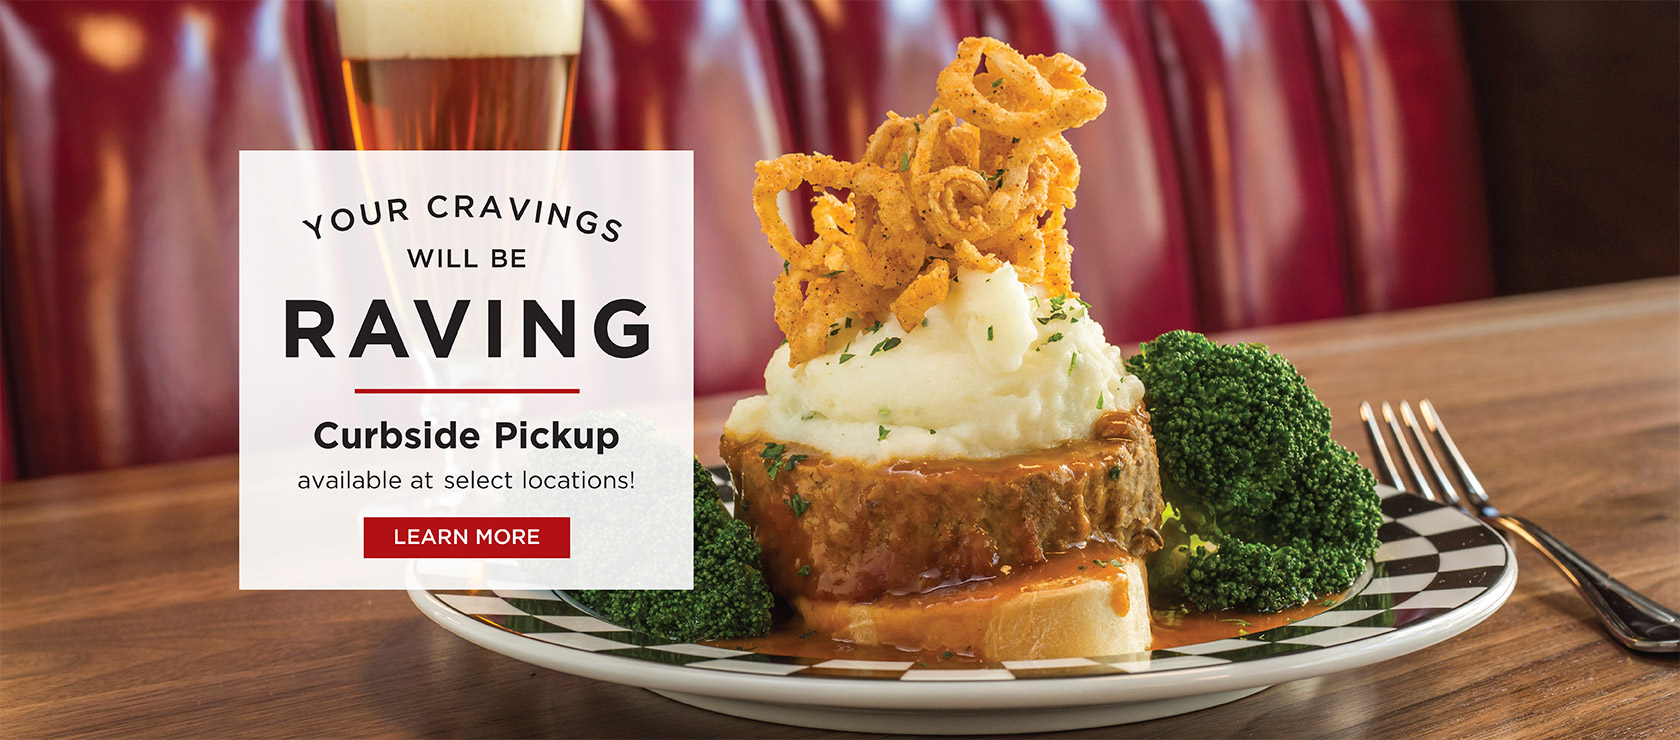 You cravings will be raving. Curbside pickup available at select locations! Learn More.